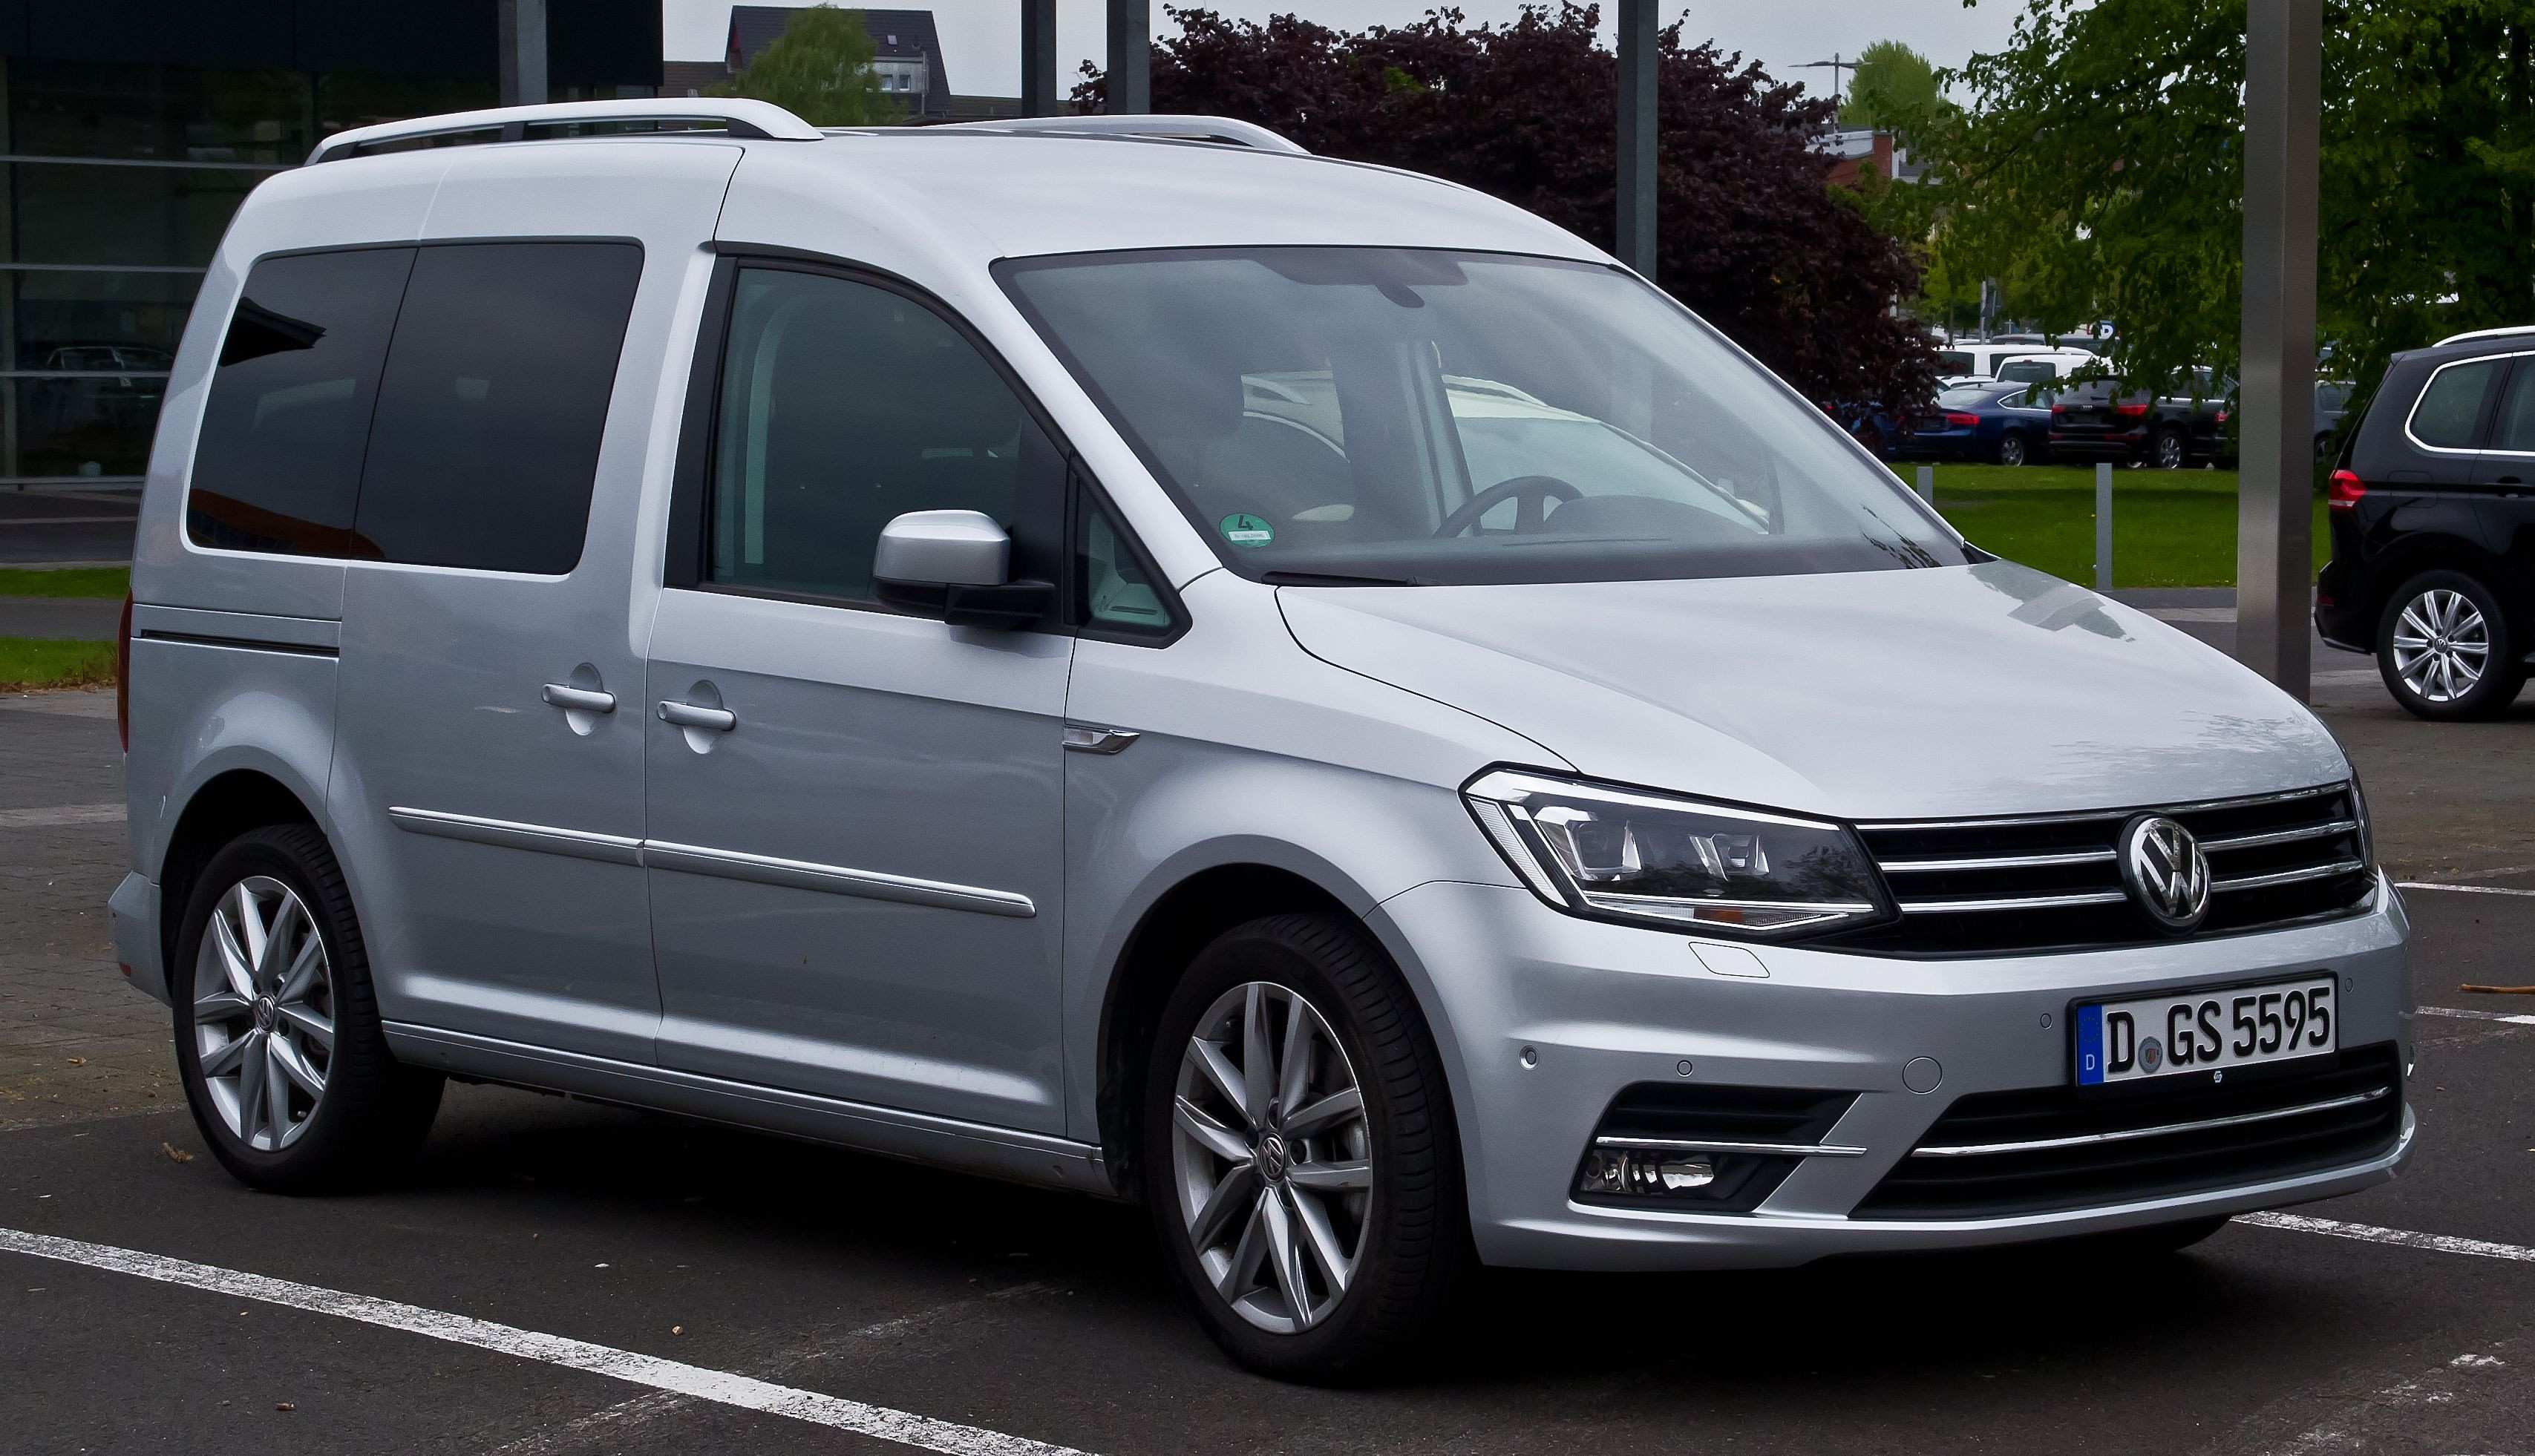 90 The Yeni Volkswagen Caddy 2020 Ratings with Yeni Volkswagen Caddy 2020